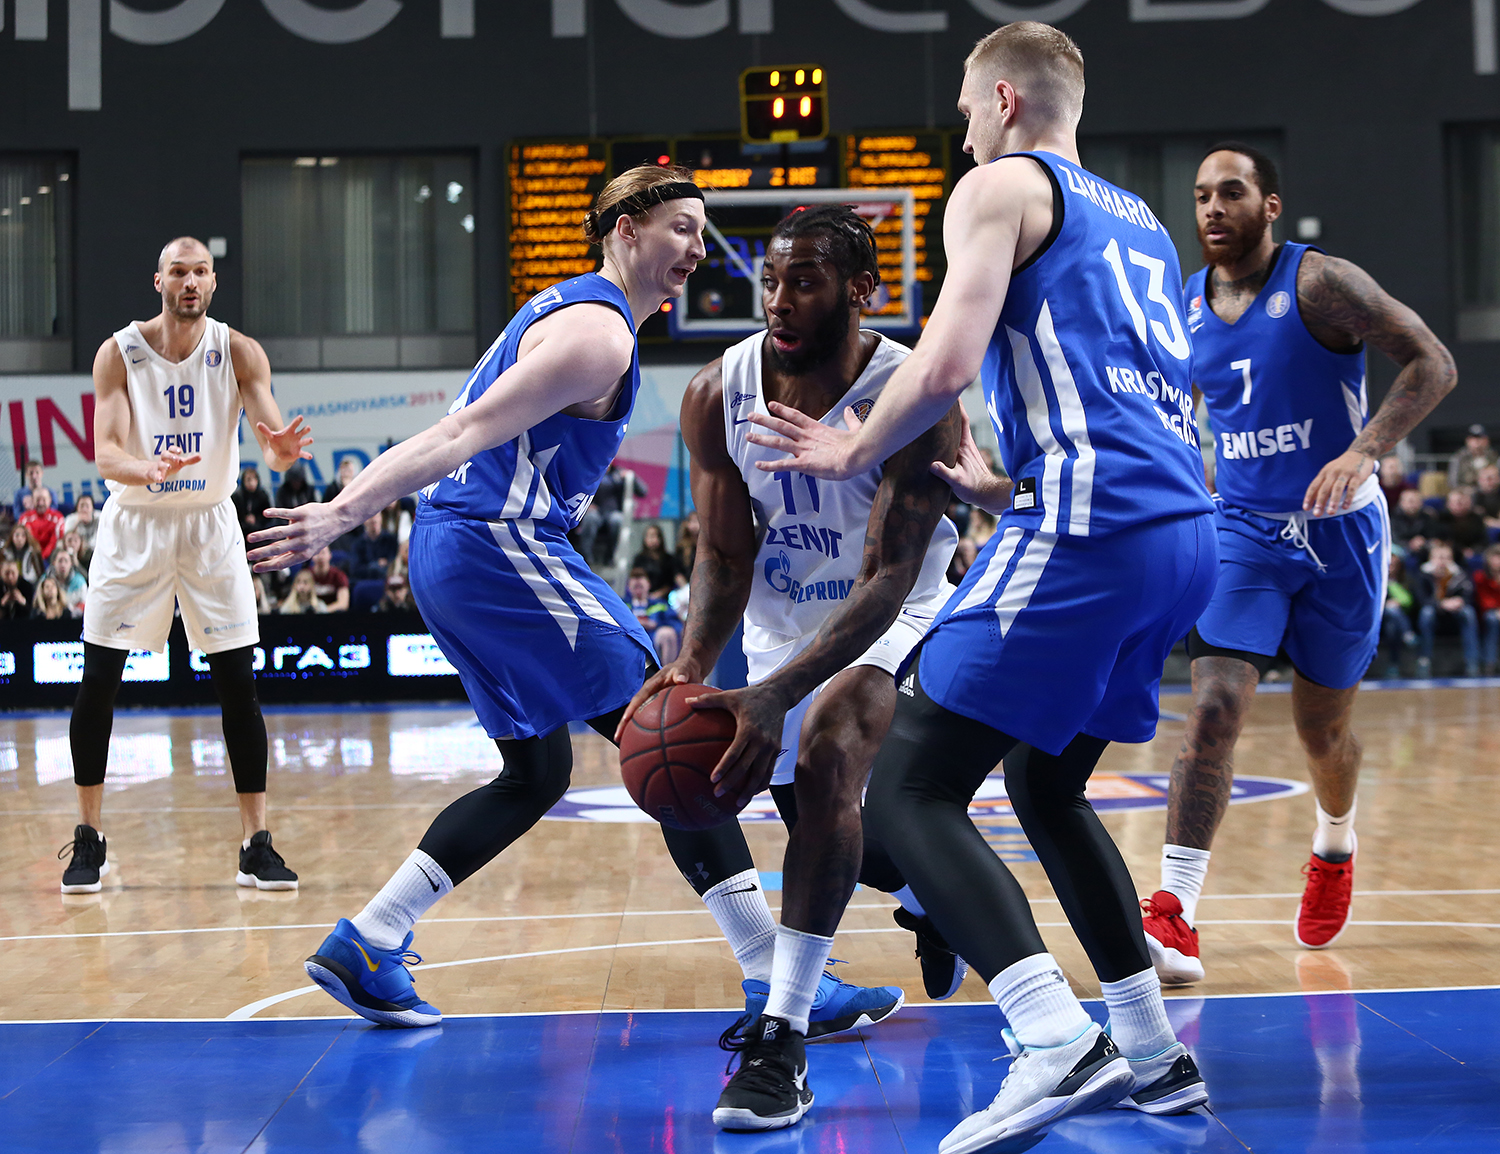 Zenit Survives In Krasnoyarsk, Wins 3rd Straight